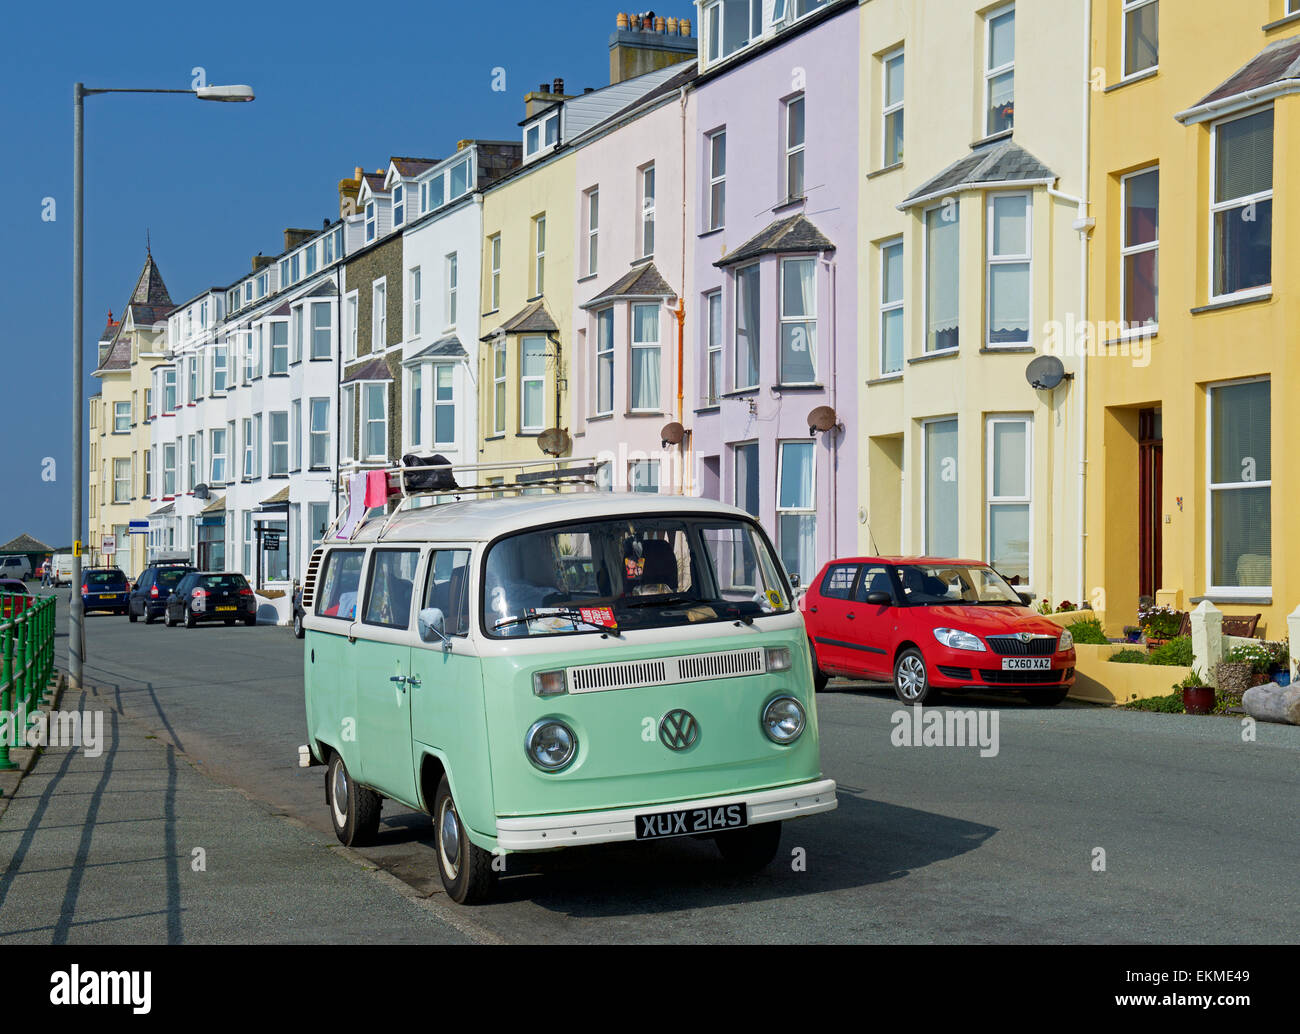 VW campervan parked in front of hotels in Tenby, Pembrokeshire, Wales UK Stock Photo